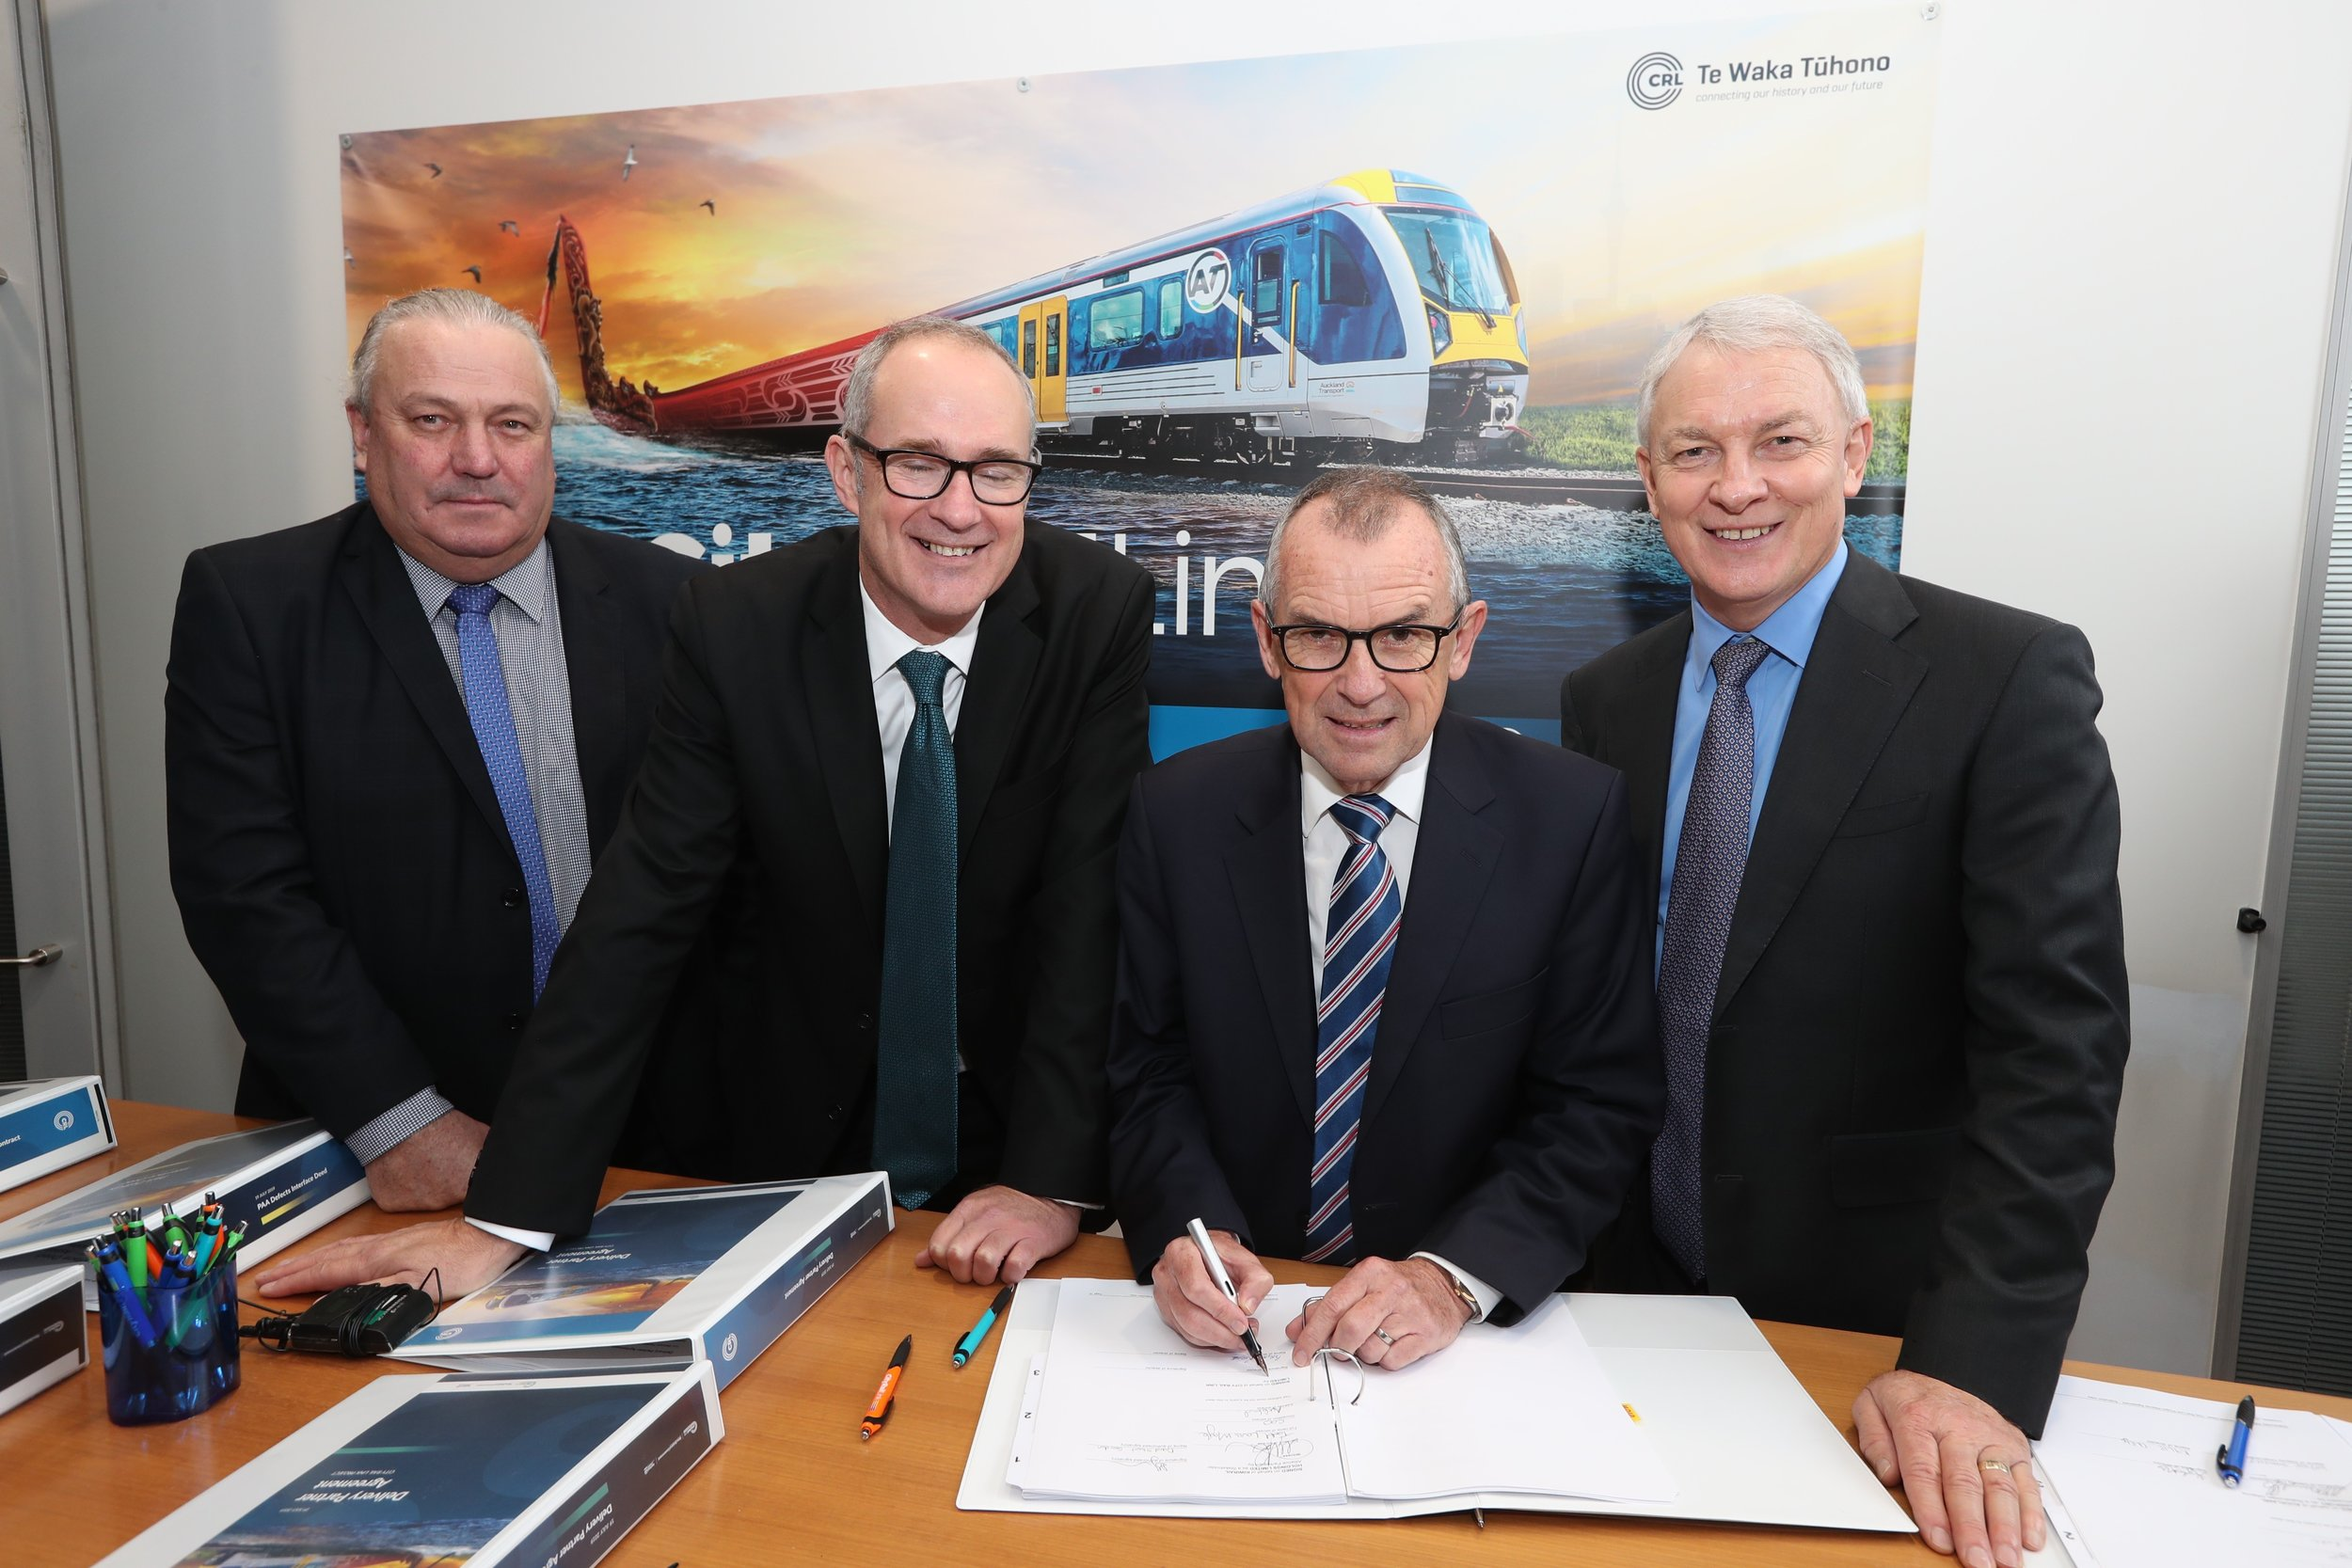 From left to right - Auckland deputy Mayor Bill Cashmore, Transport Minister Phil Twyford, CRLL Chair Sir Brian Roche, Auckland Mayor Phil Goff.